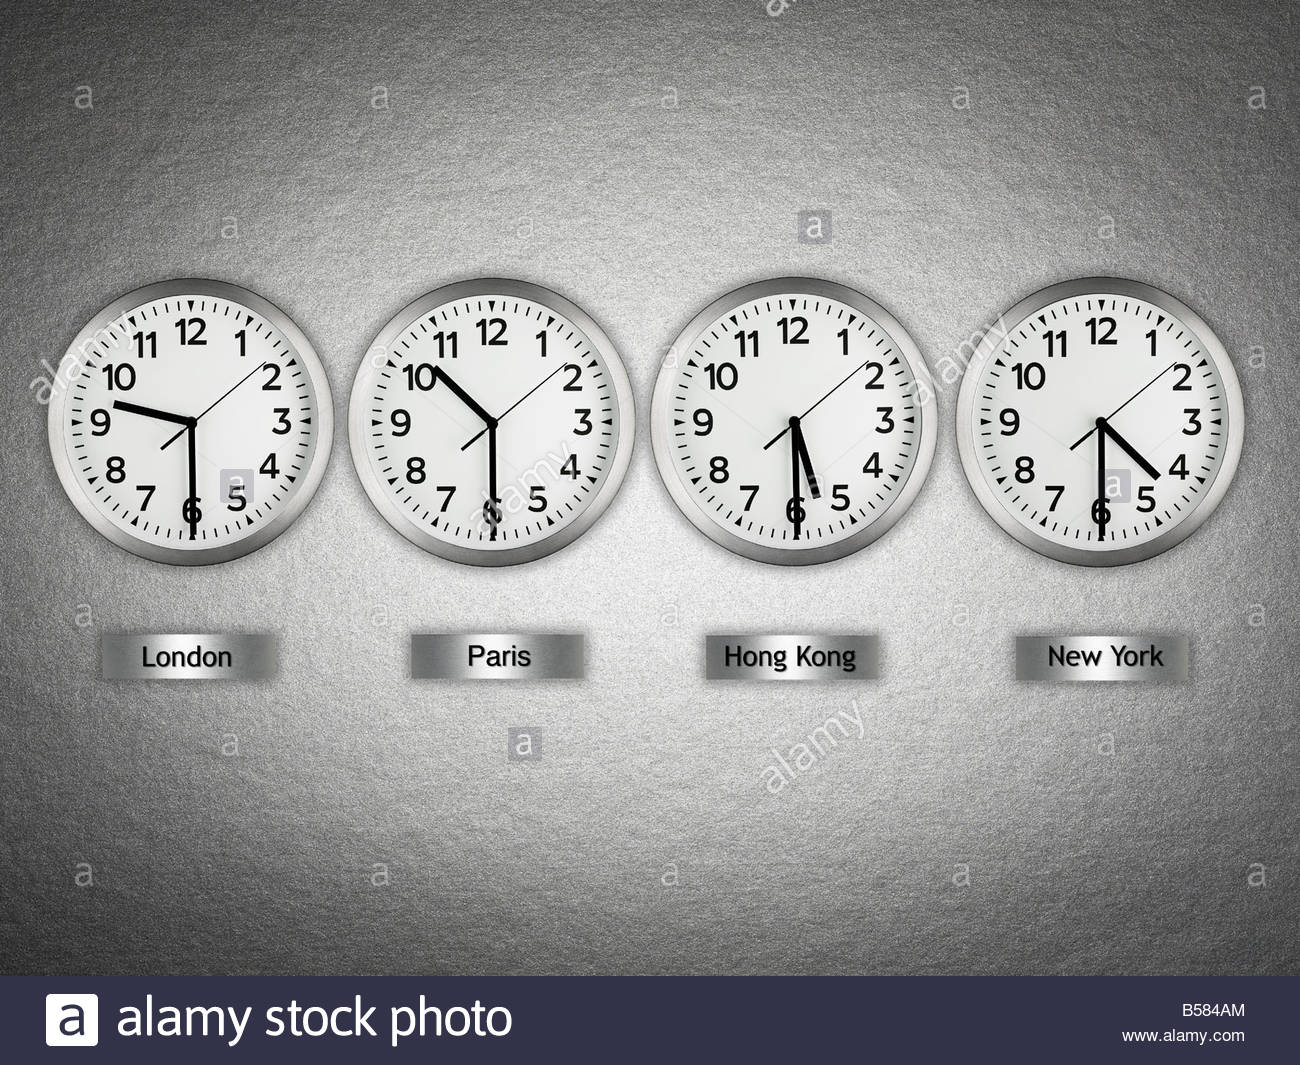 International wall clocks - Stock Image